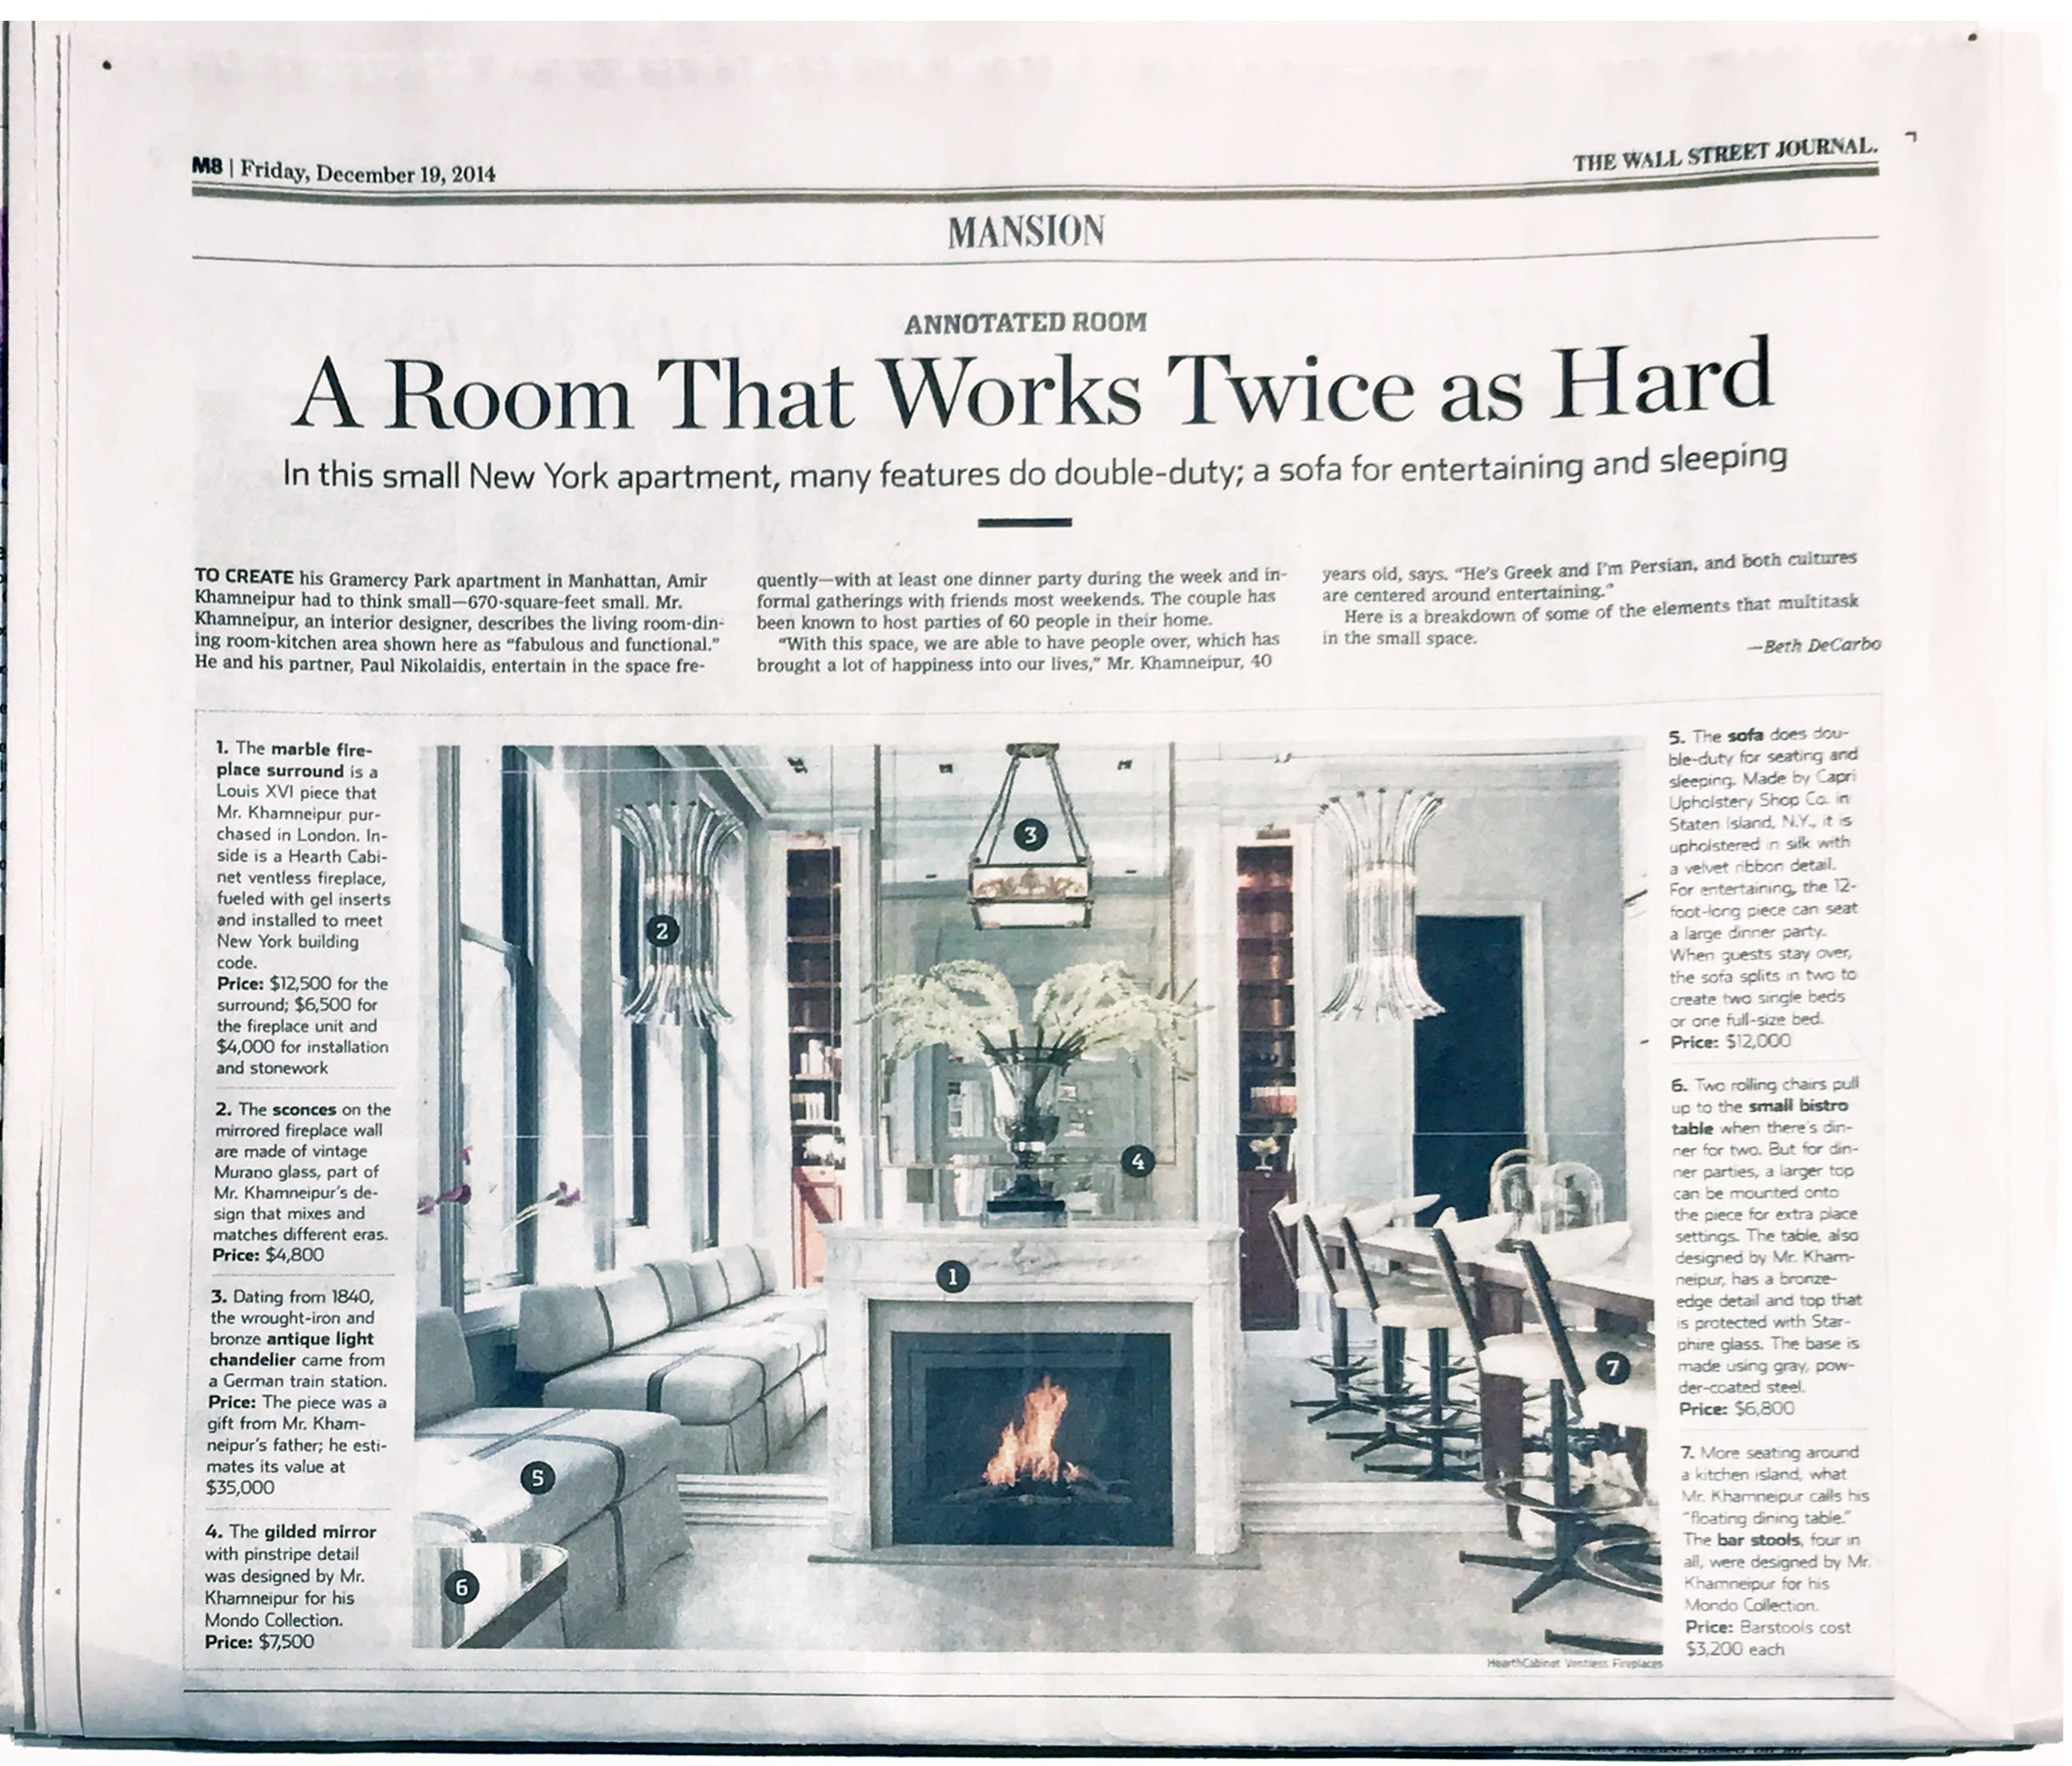 A Tiny Apartment Works Twice as Hard / The Wall Street Journal